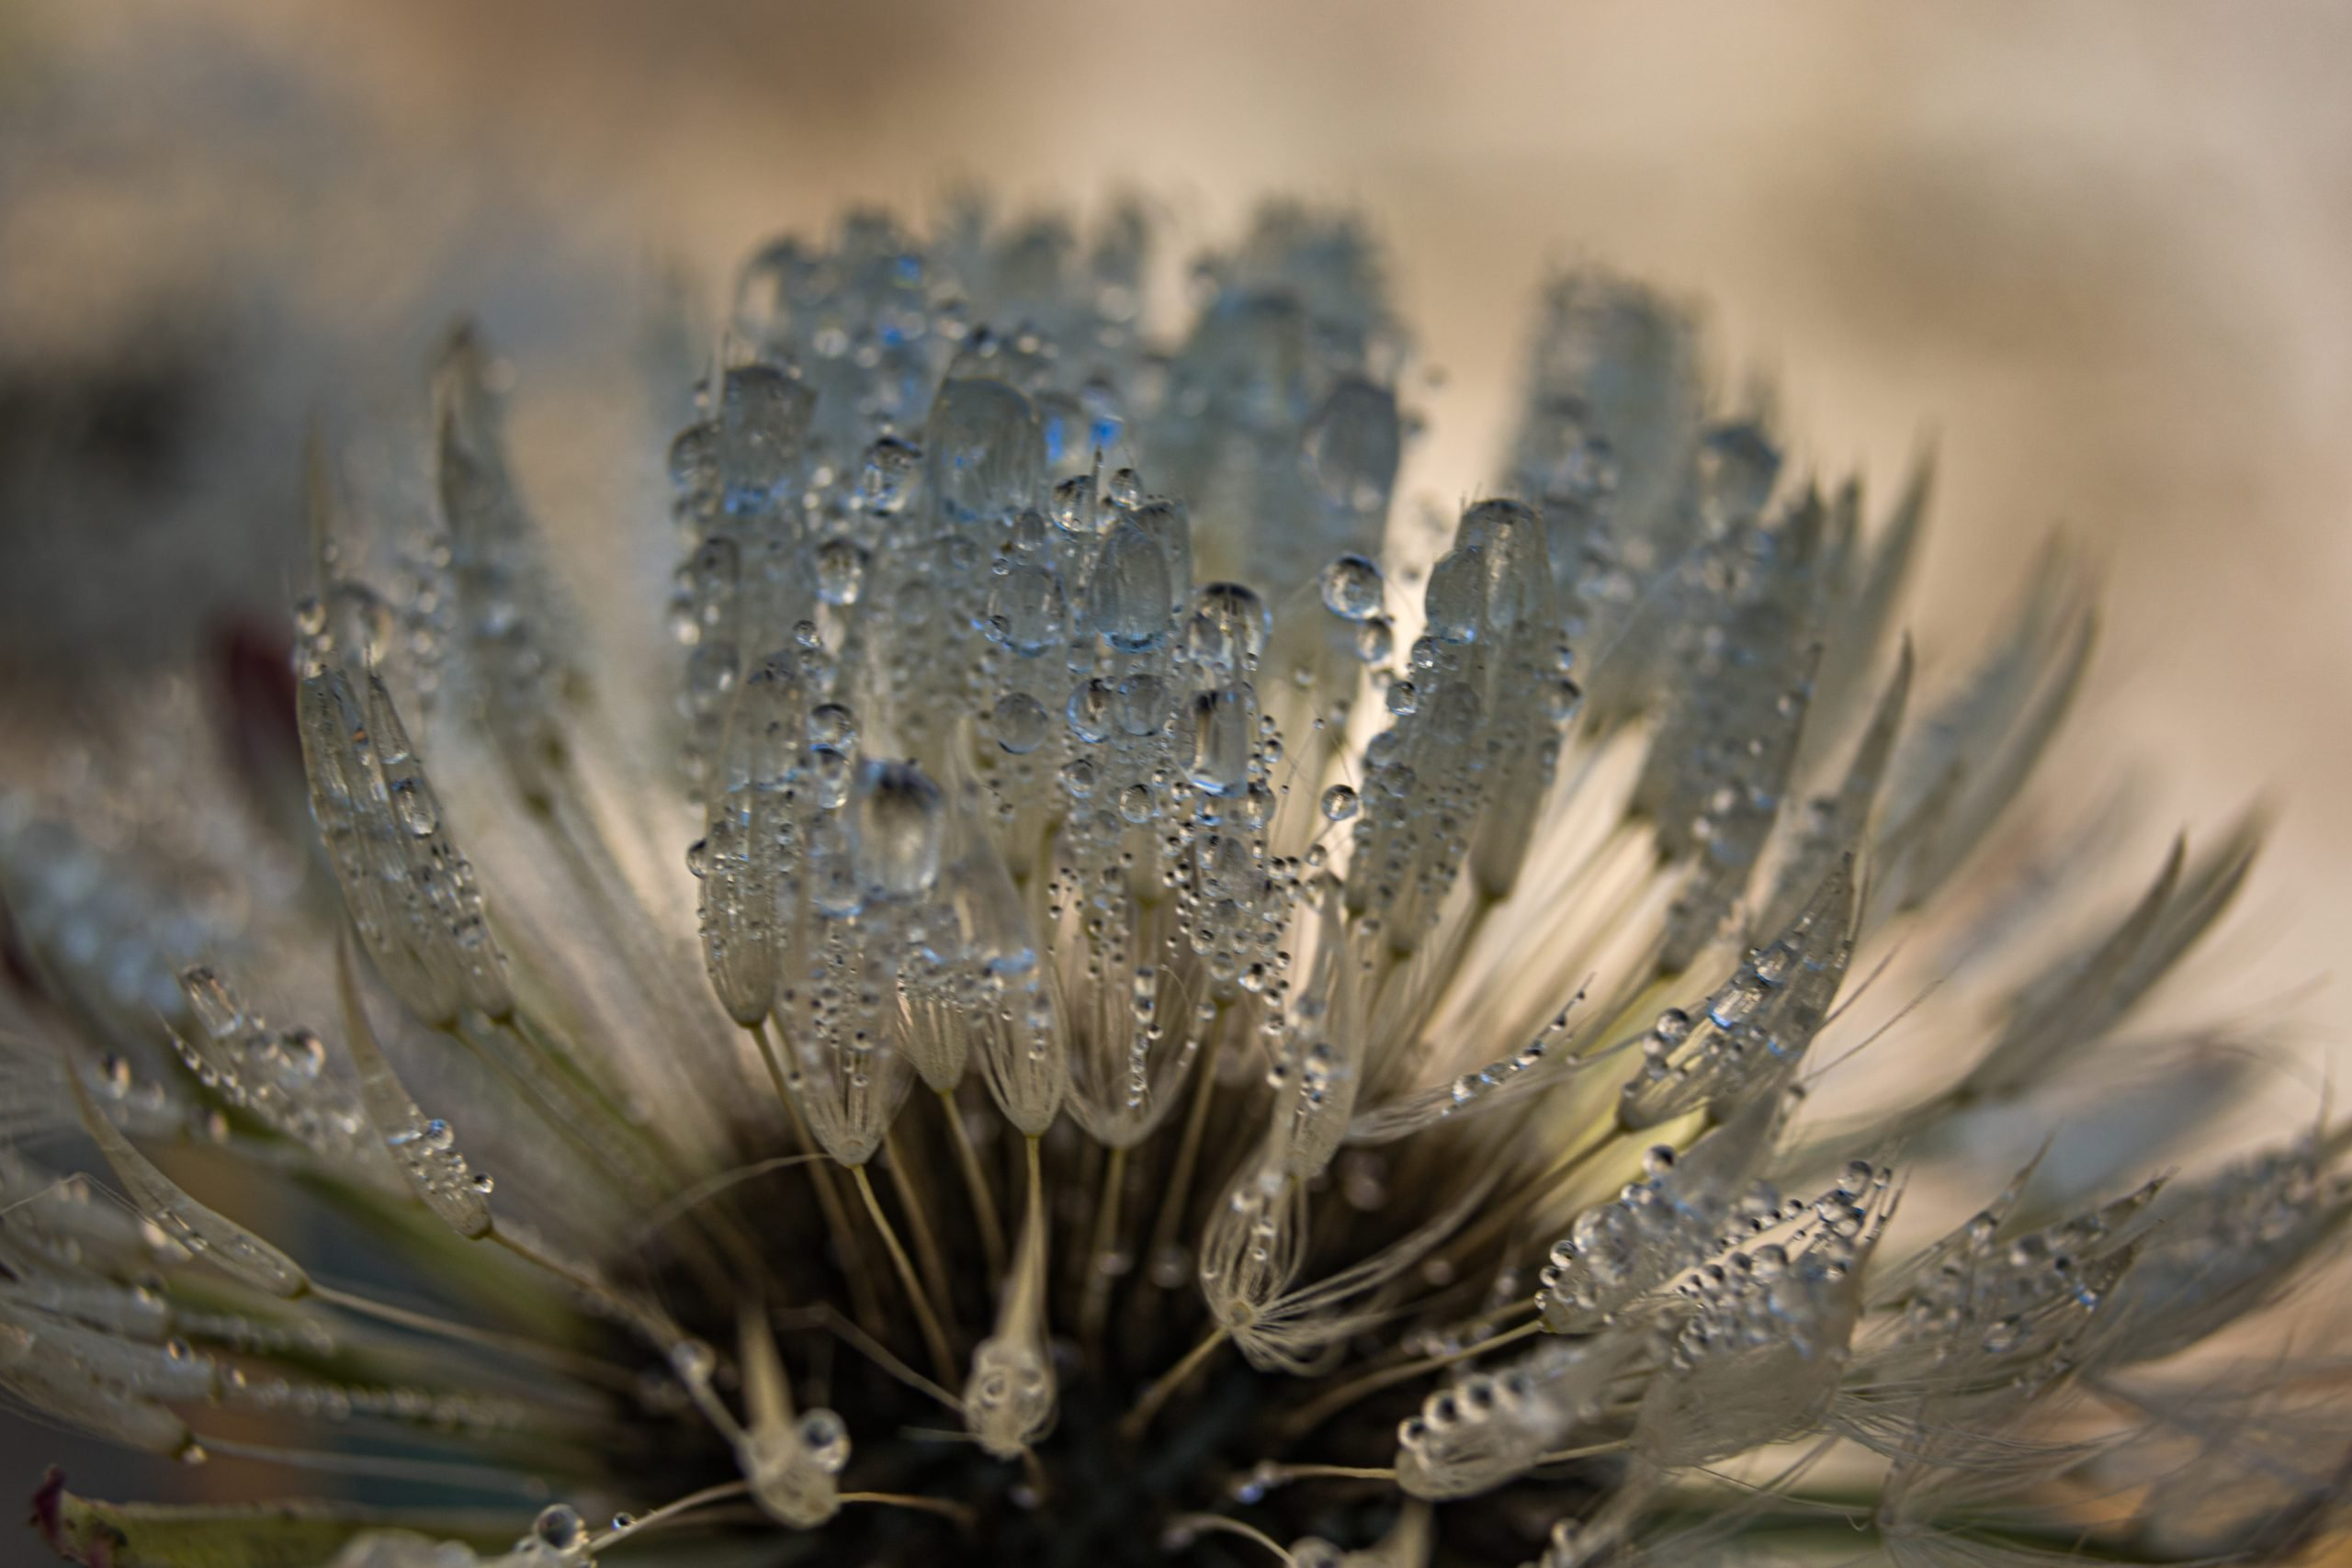 Dew drops on the plant leaf